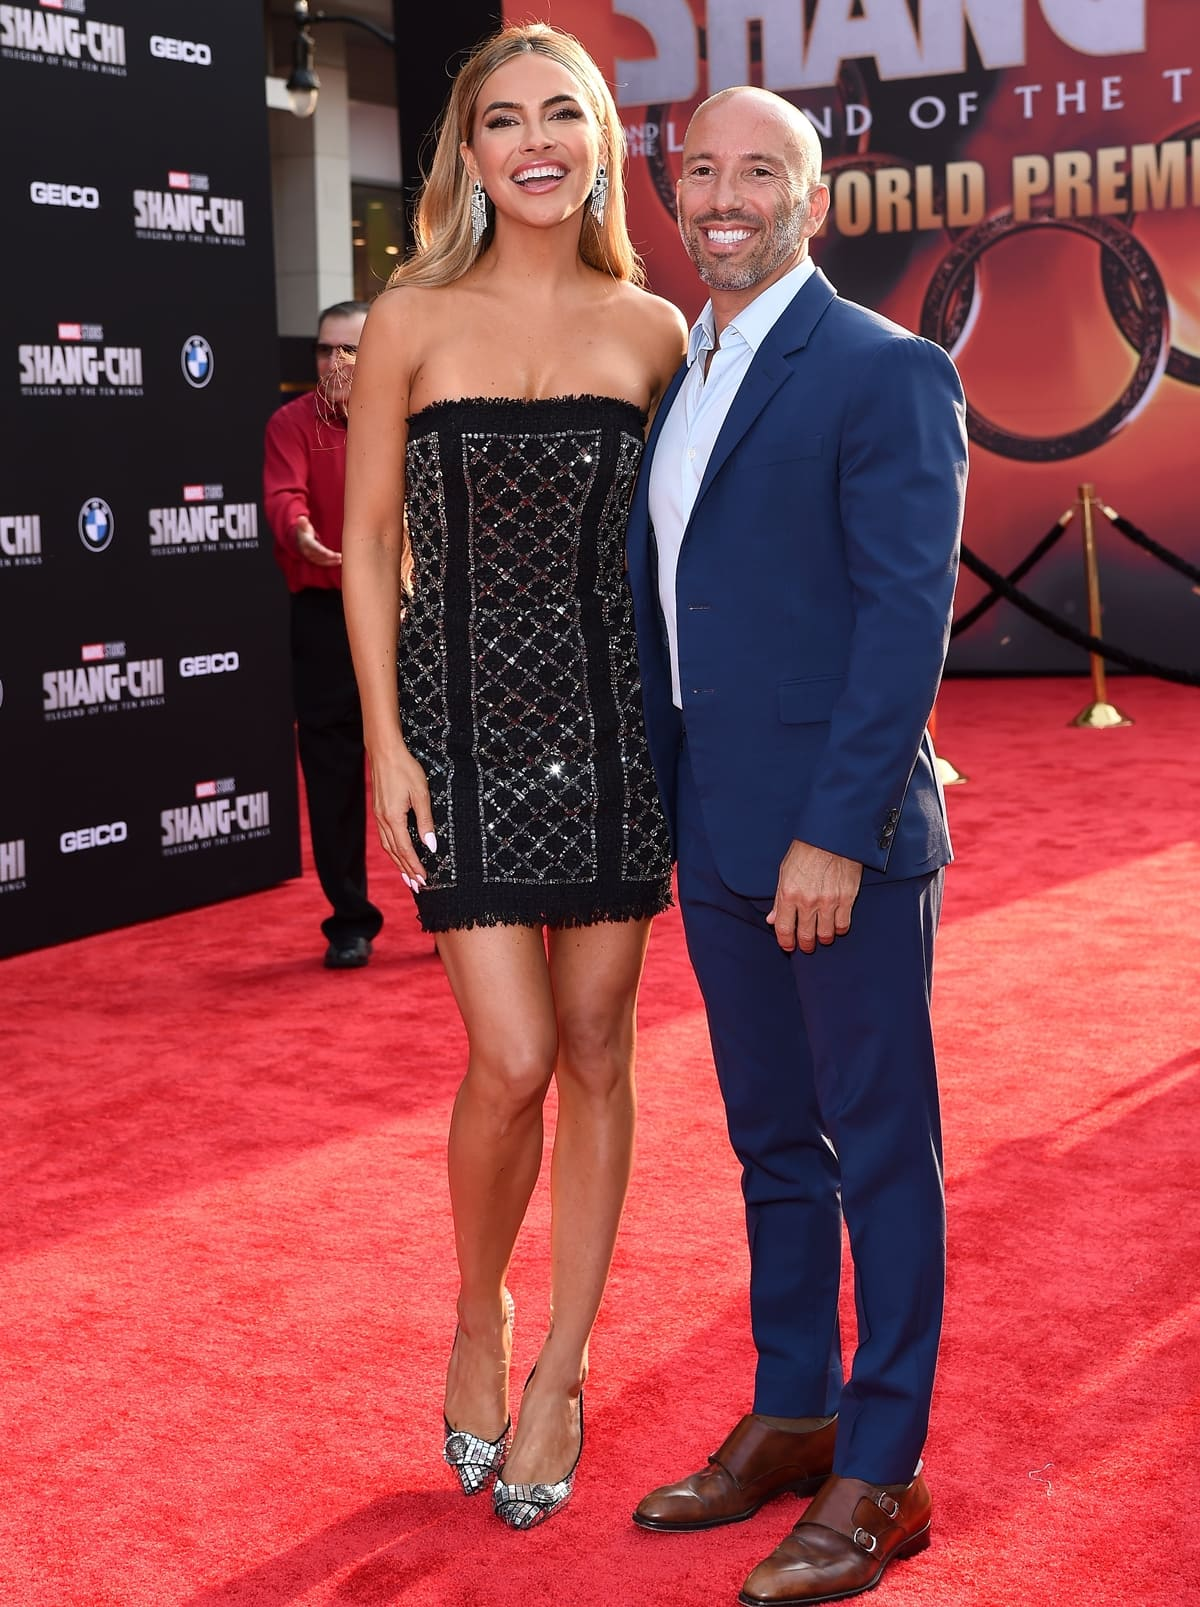 40-year-old former soap opera actress Chrishell Stause and 44-year-old real estate broker Jason Oppenheim